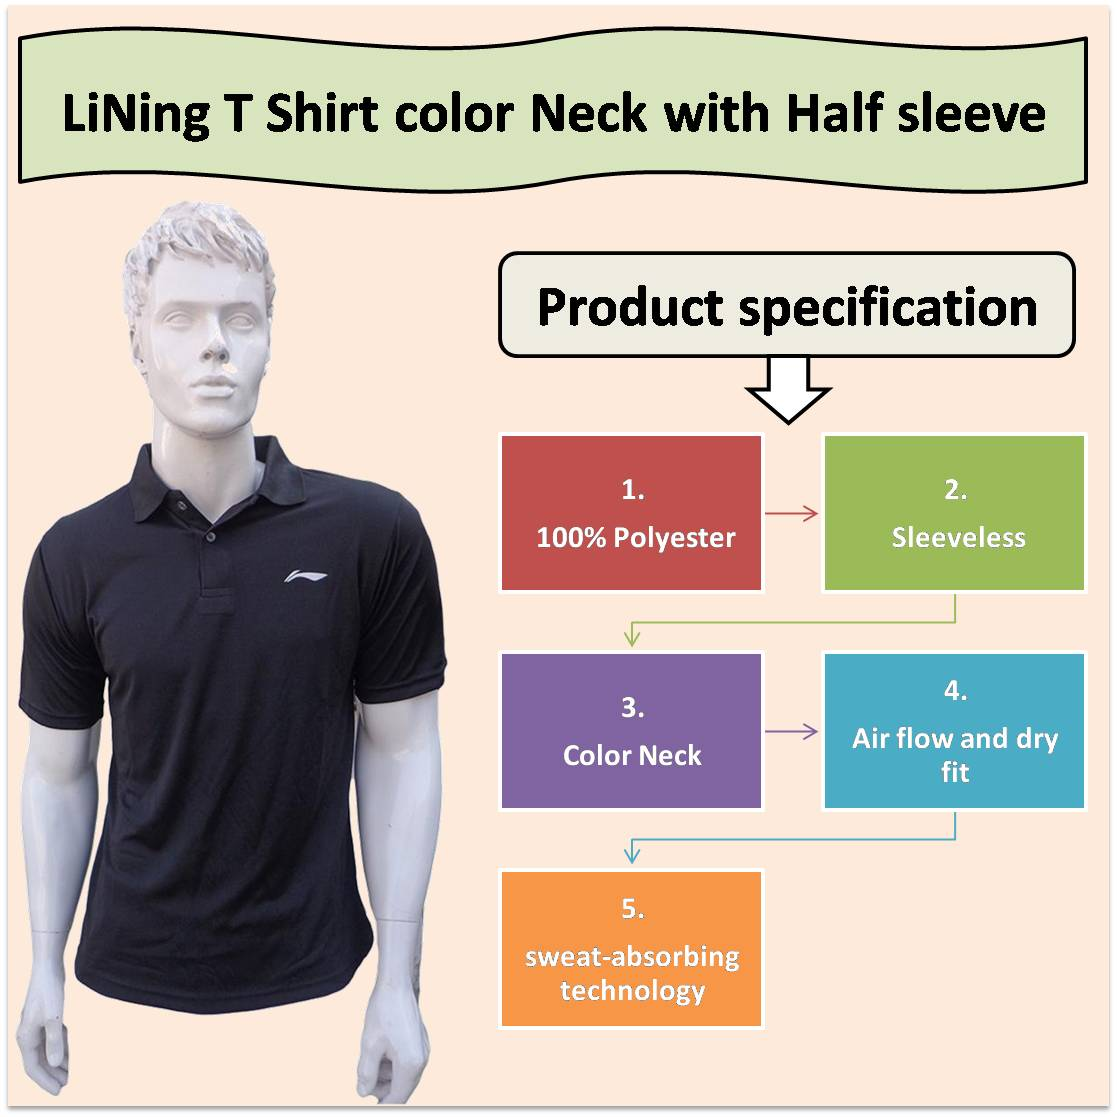 LiNing T Shirt color Neck with Half sleeve Black